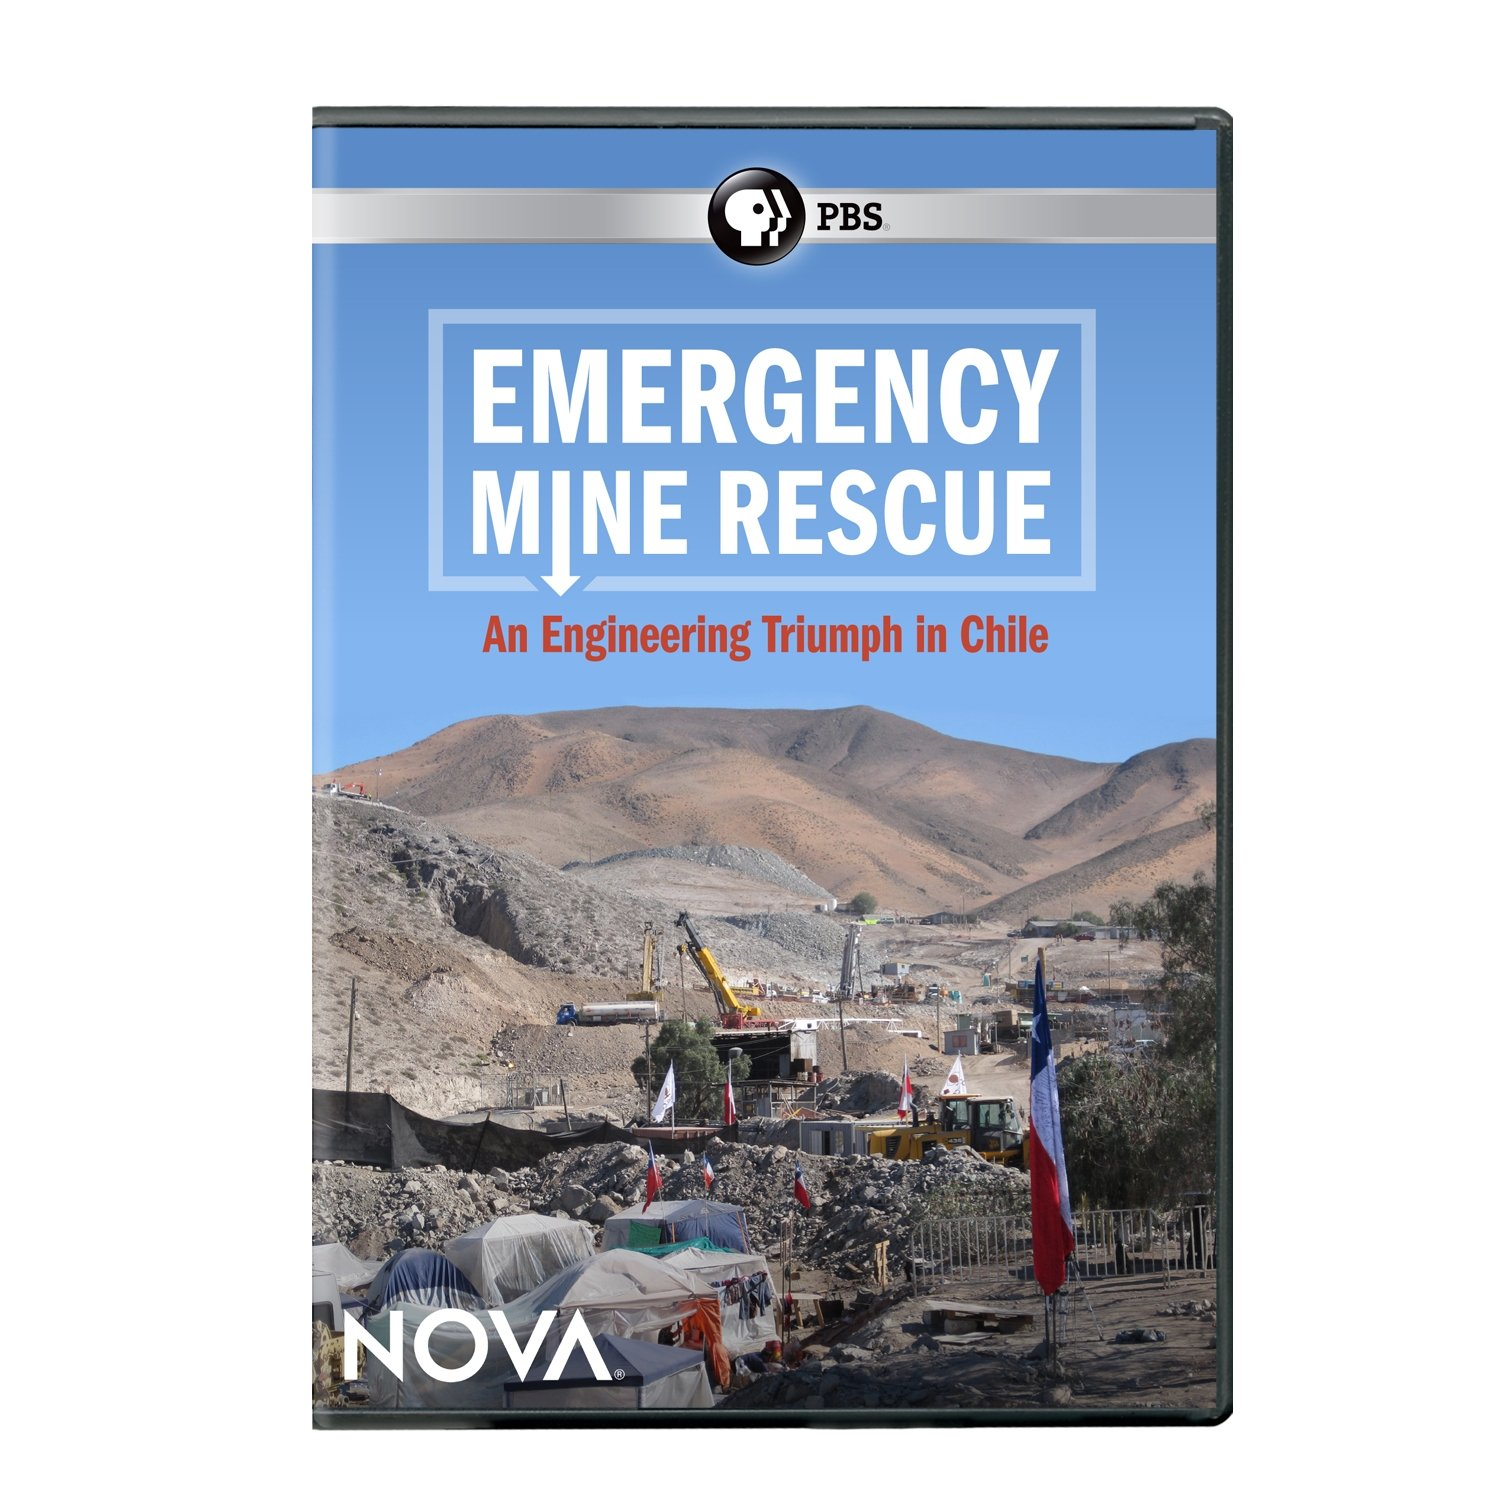 DVD : Nova: Emergency Mine Rescue (DVD)